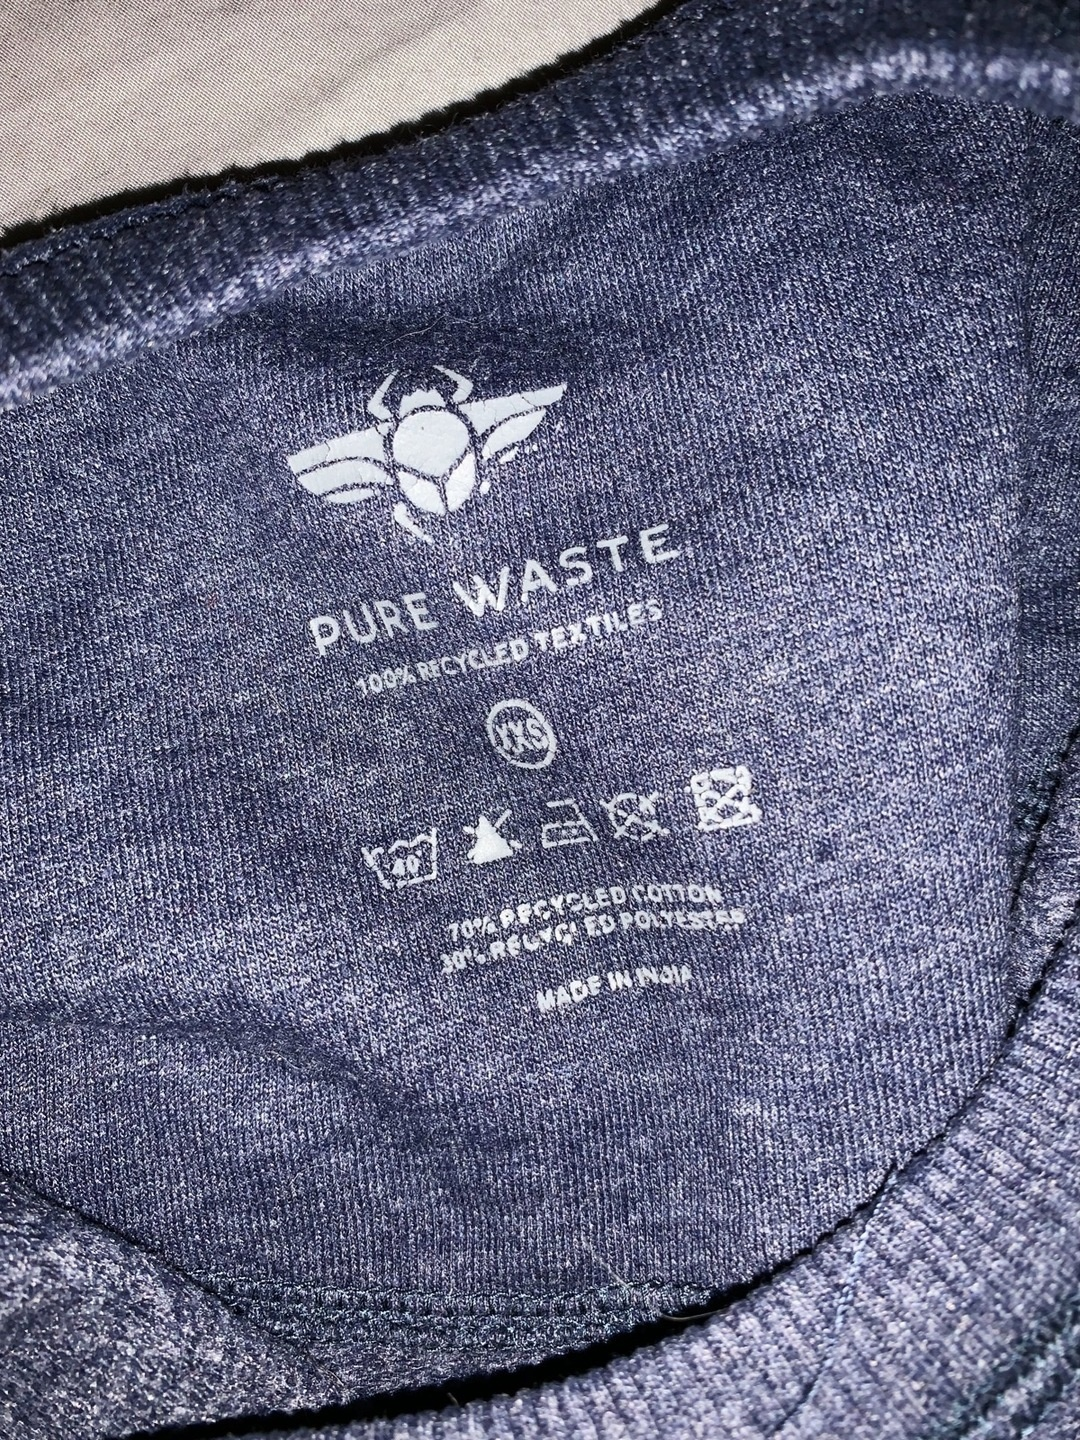 Damen kapuzenpullover & sweatshirts - PURE WASTE photo 3